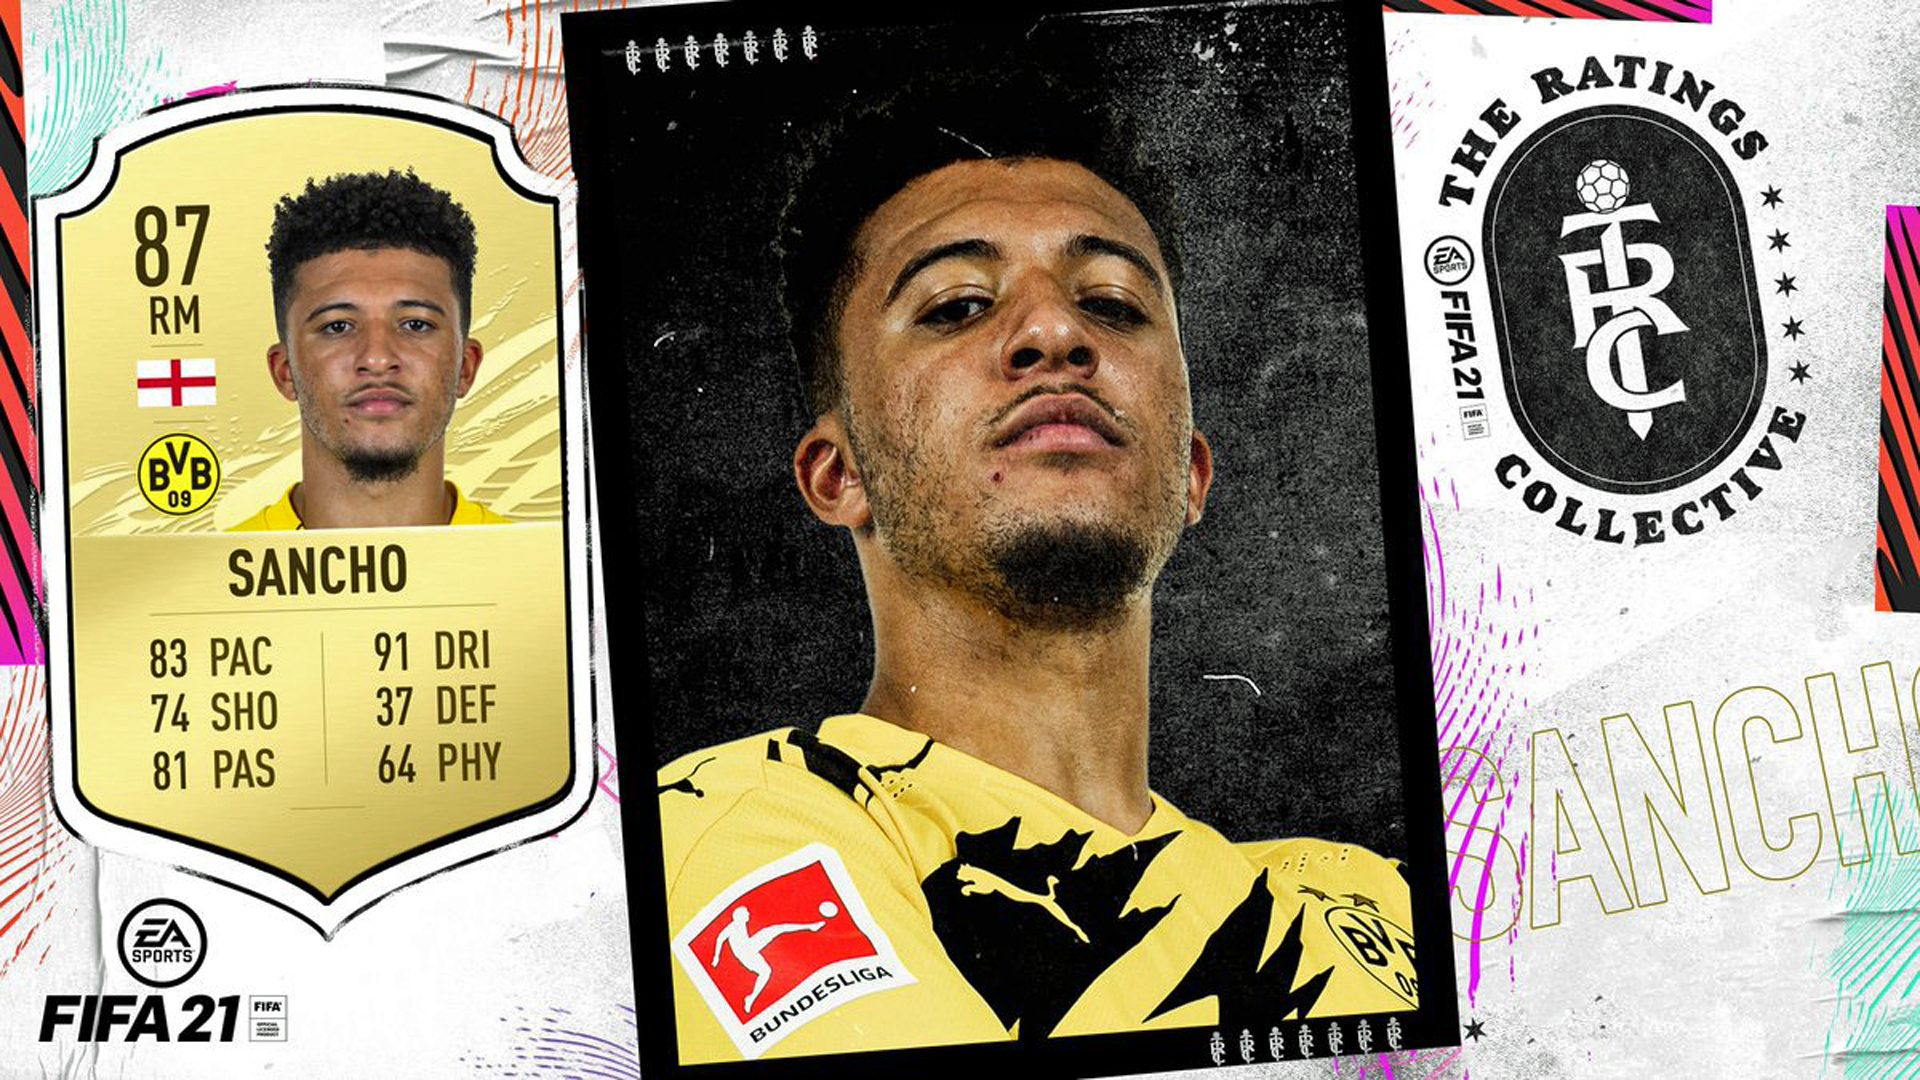 bundesliga jadon sancho and the top 5 bundesliga players in fifa 21 bundesliga players in fifa 21